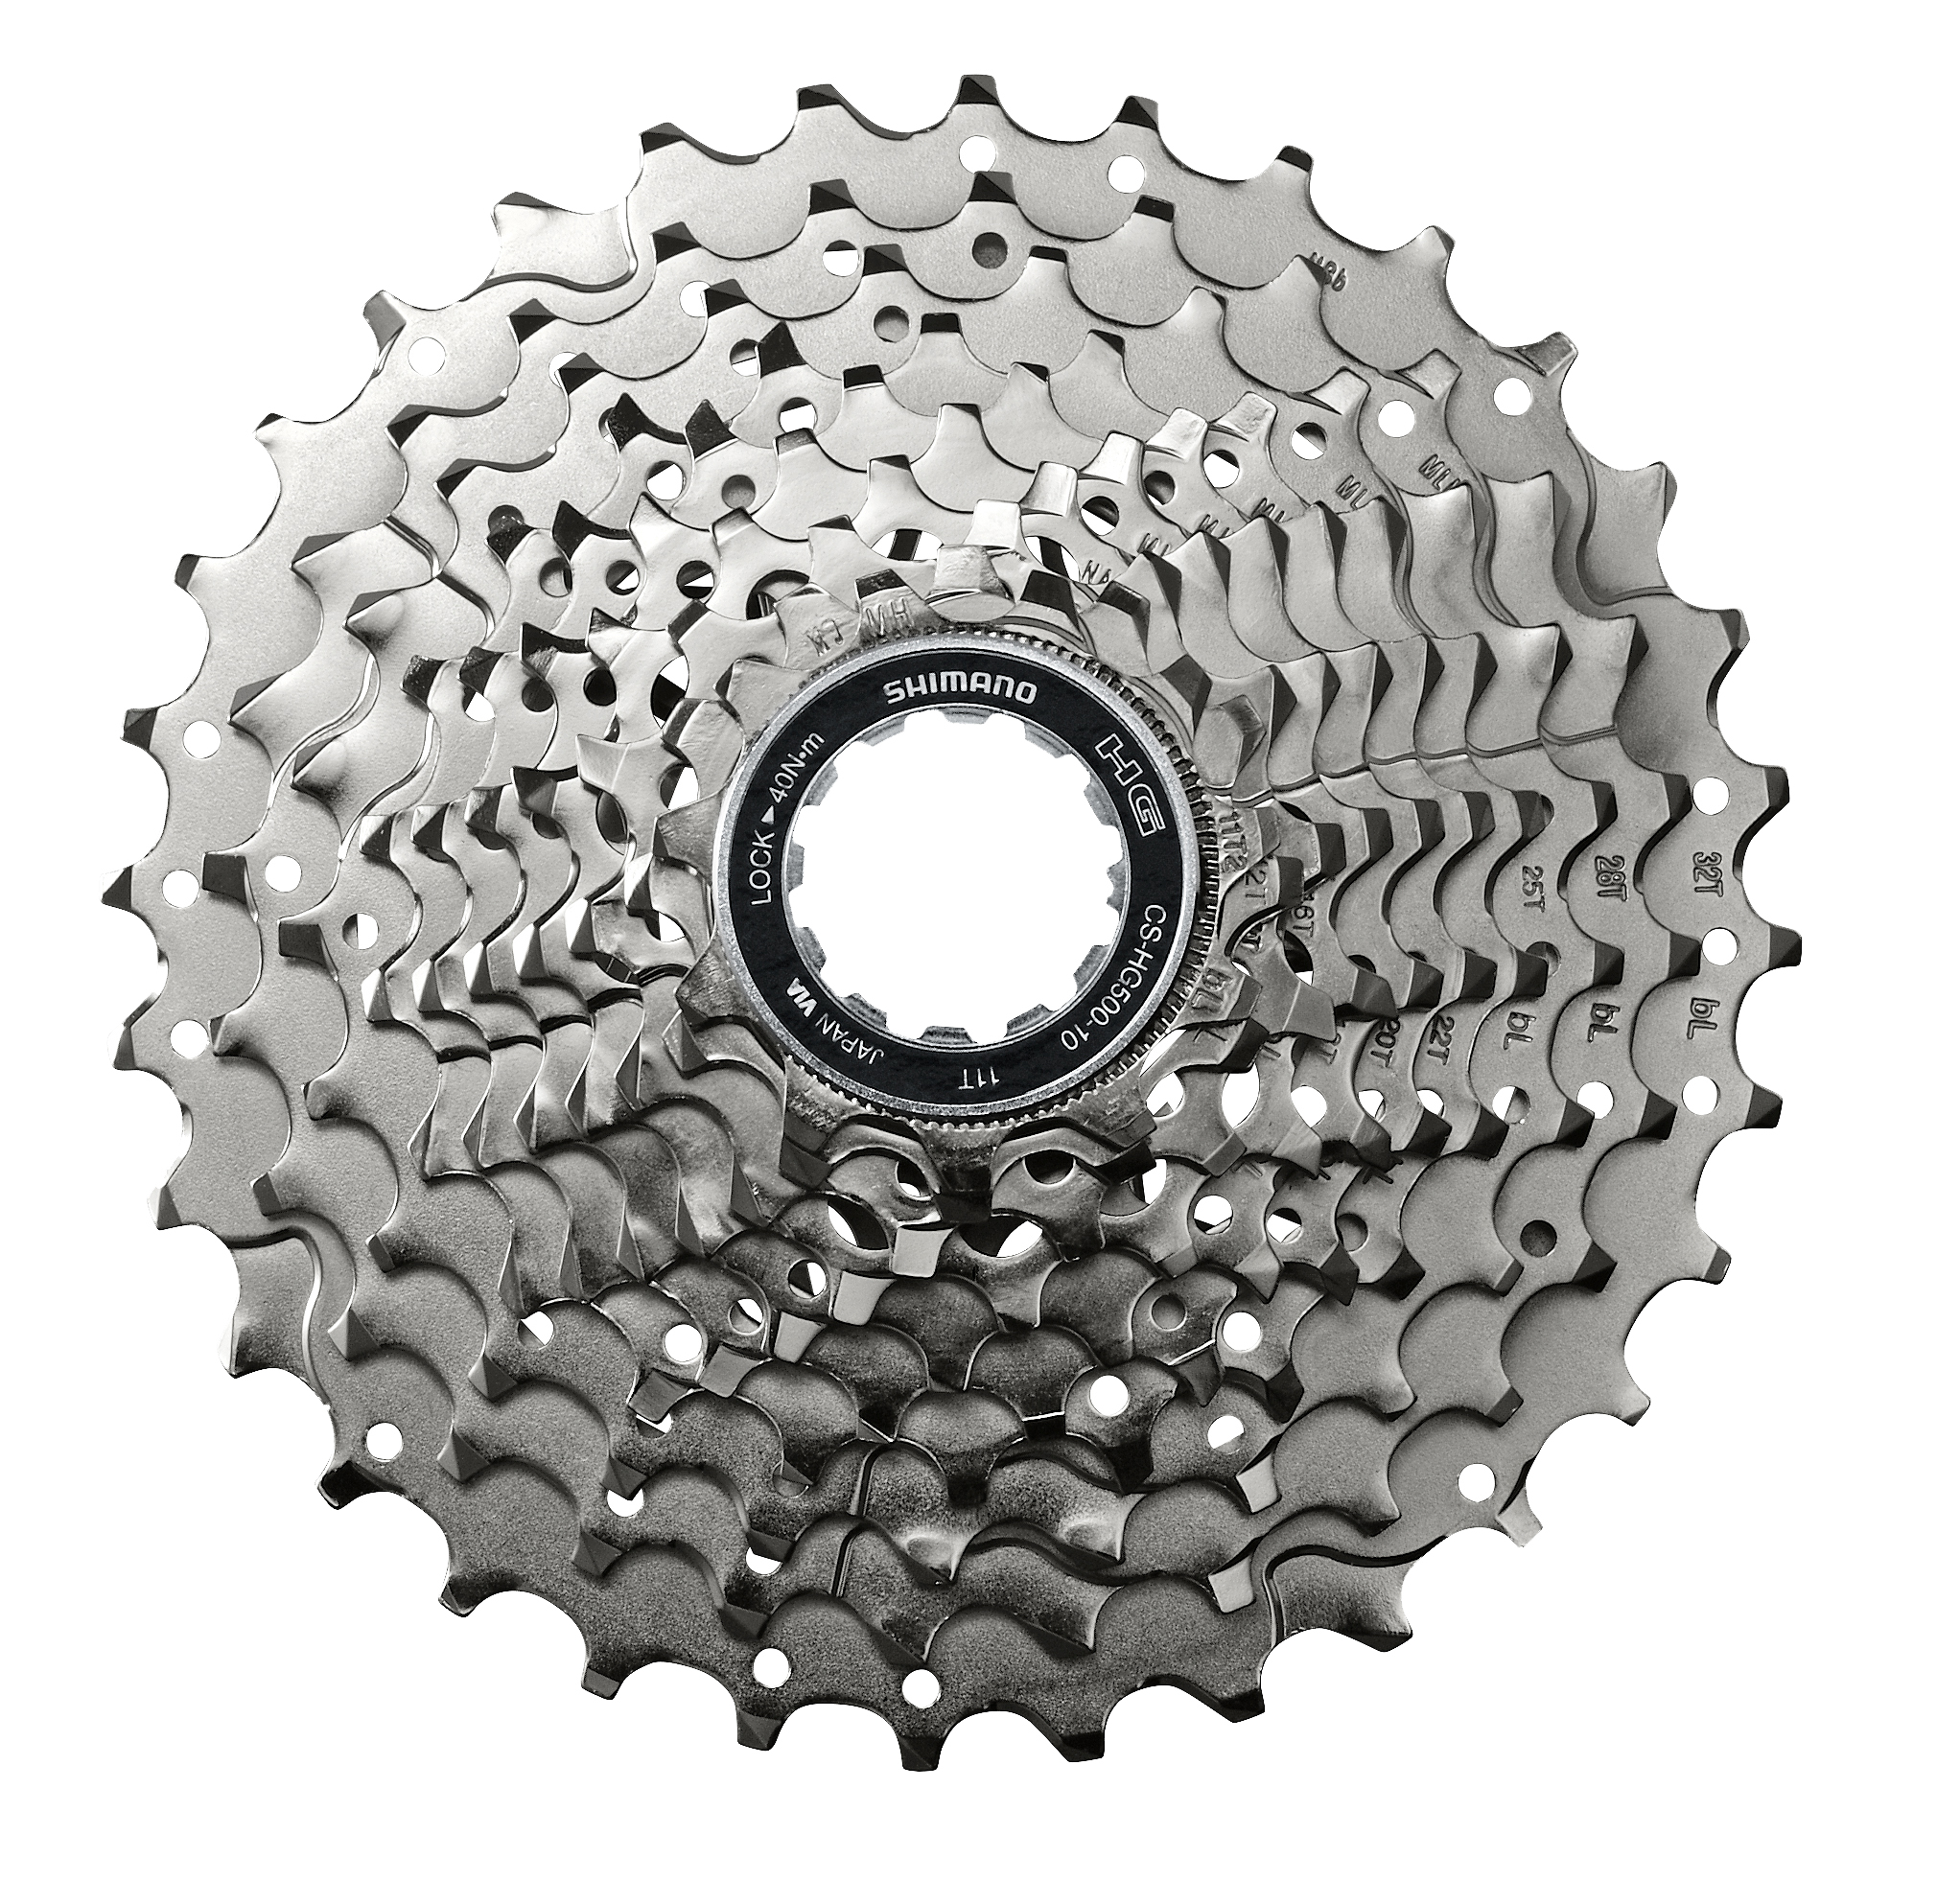 Shimano Cassettes And Freewheels Sproket 8 Speed Hg 31 11 34t